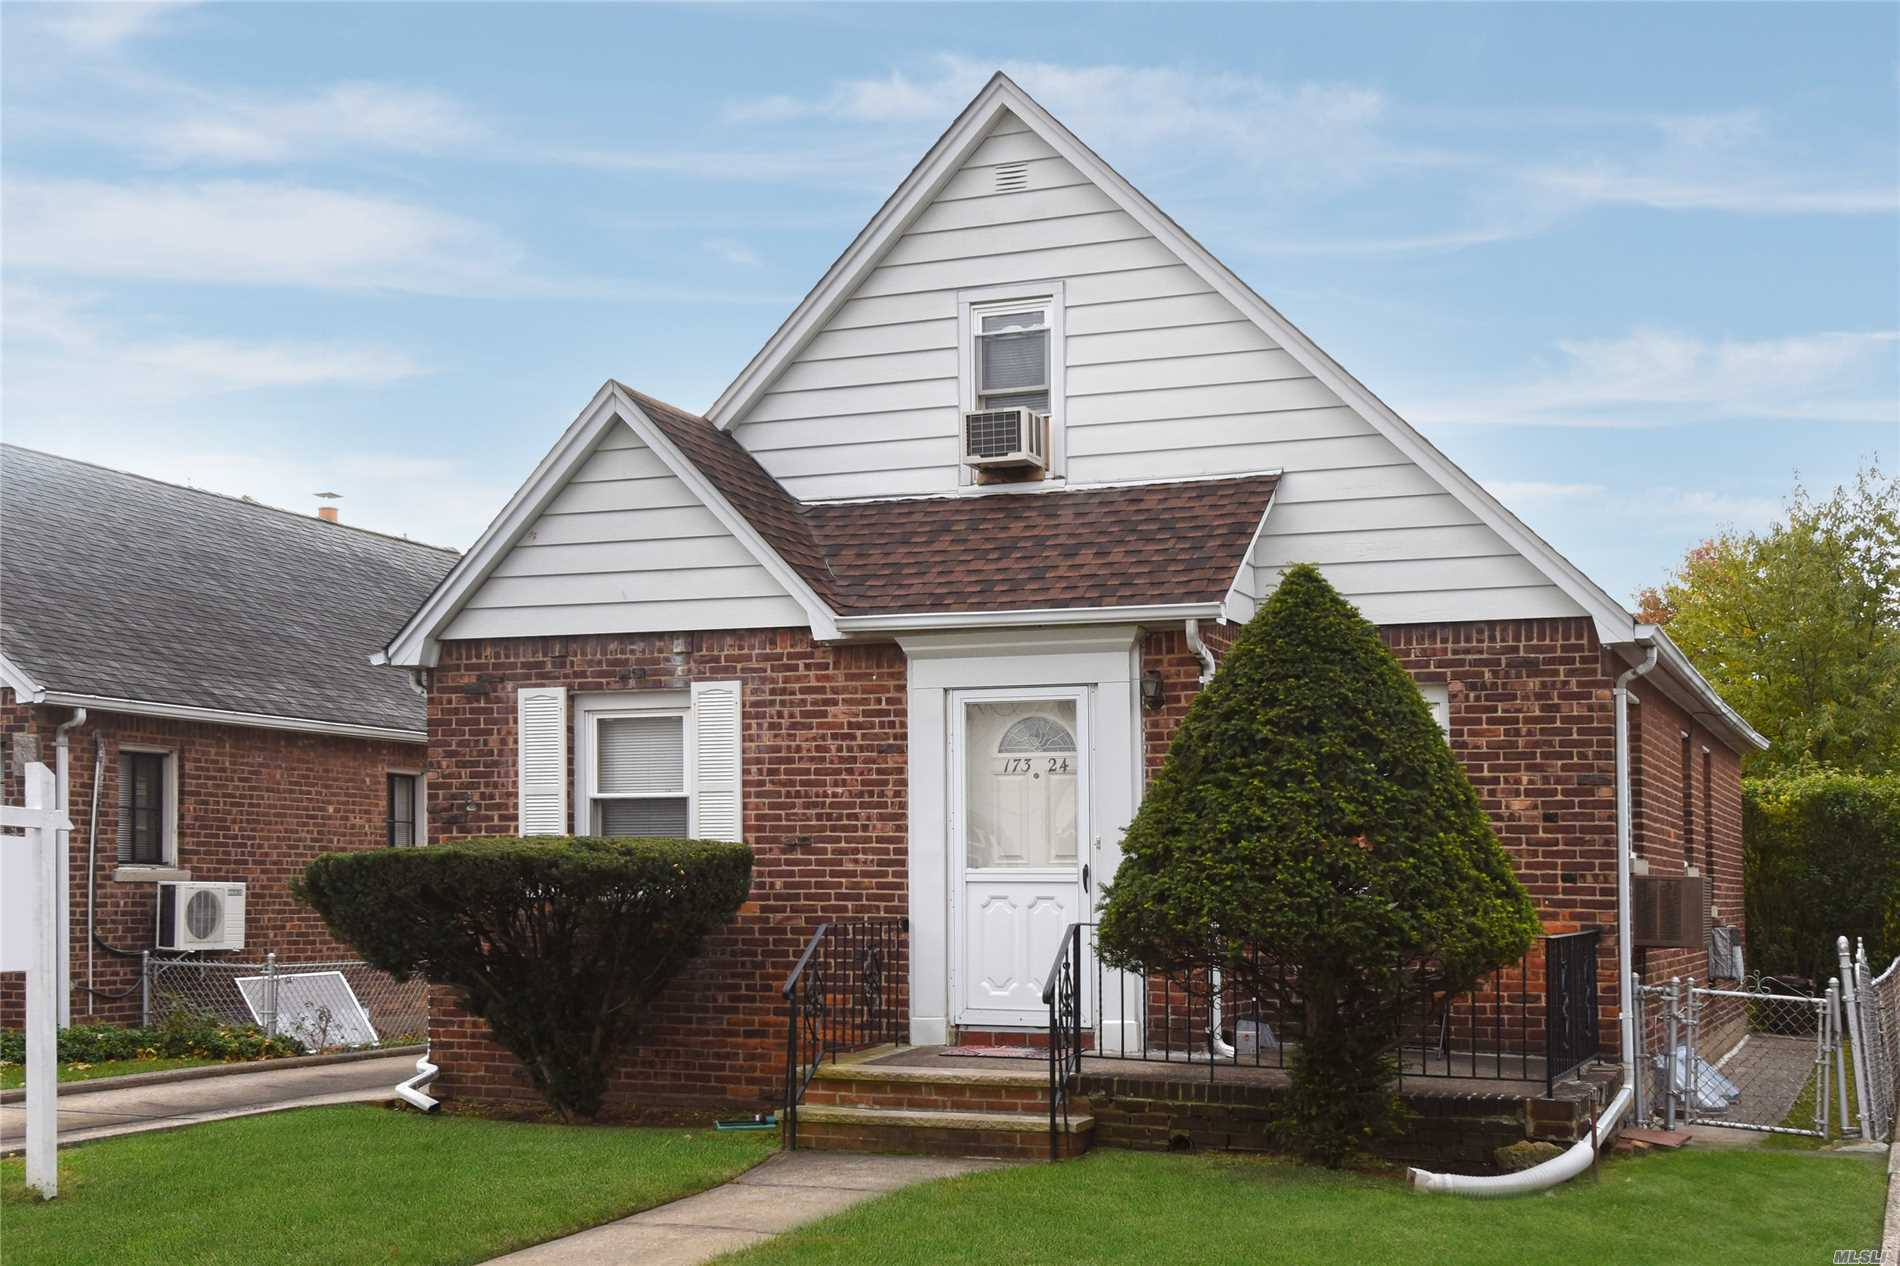 First Time On The Market But Not For Long...Bright & Sunny Detached Cape On A Pretty Tree Lined Street In Flushing. Needs Some Updating However Has Great Potential To Rebuild/Expand. Close To Shopping And Transportation. Schools: Ps 107; Jhs 216; Francis Lewis H.S.